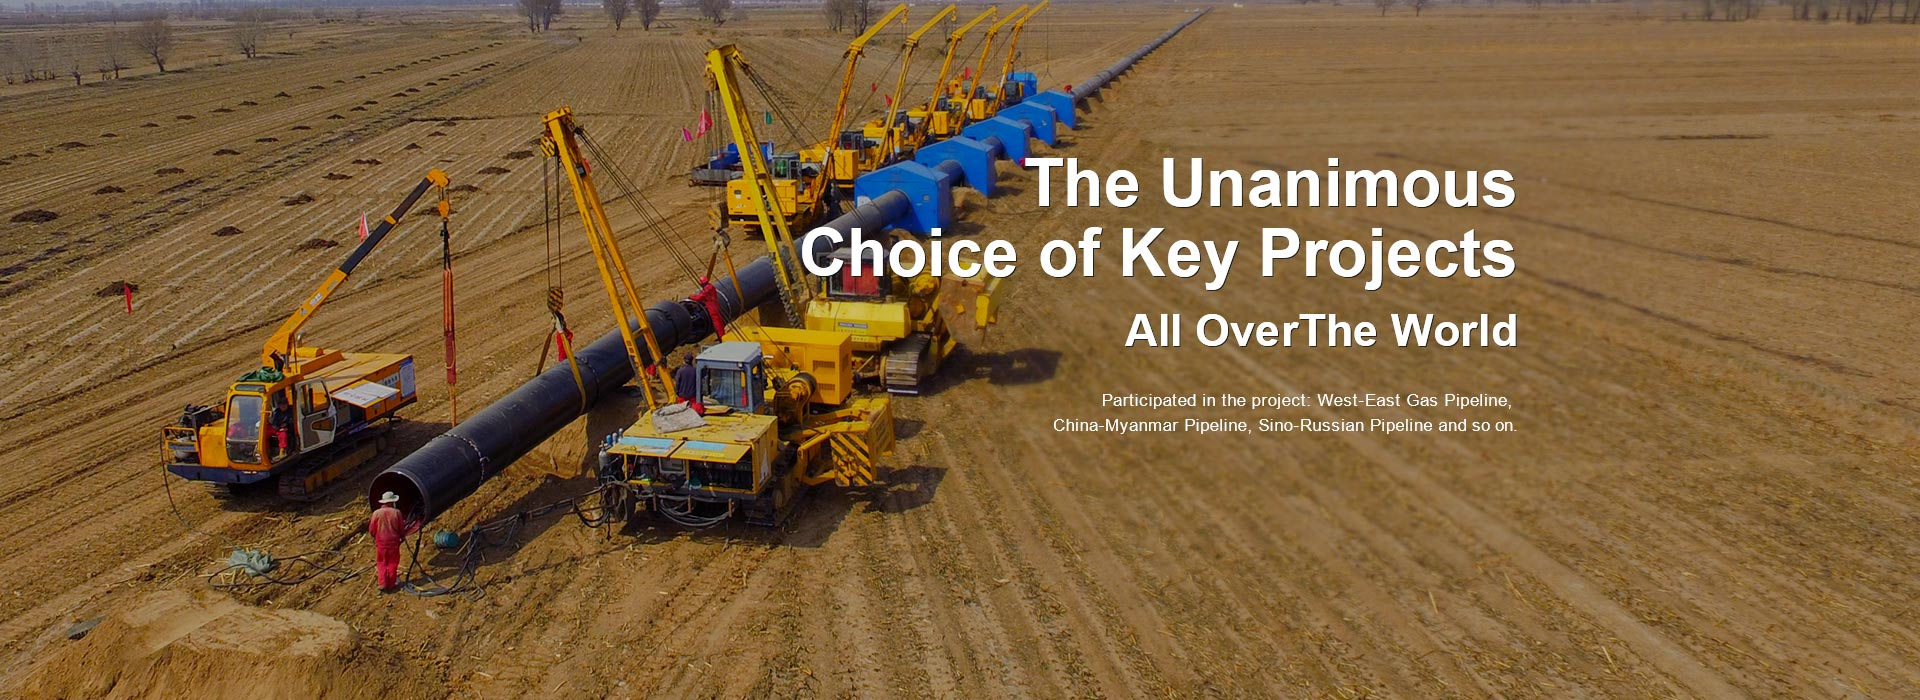 The Unanimous Choice Of Key Projects All Over The World